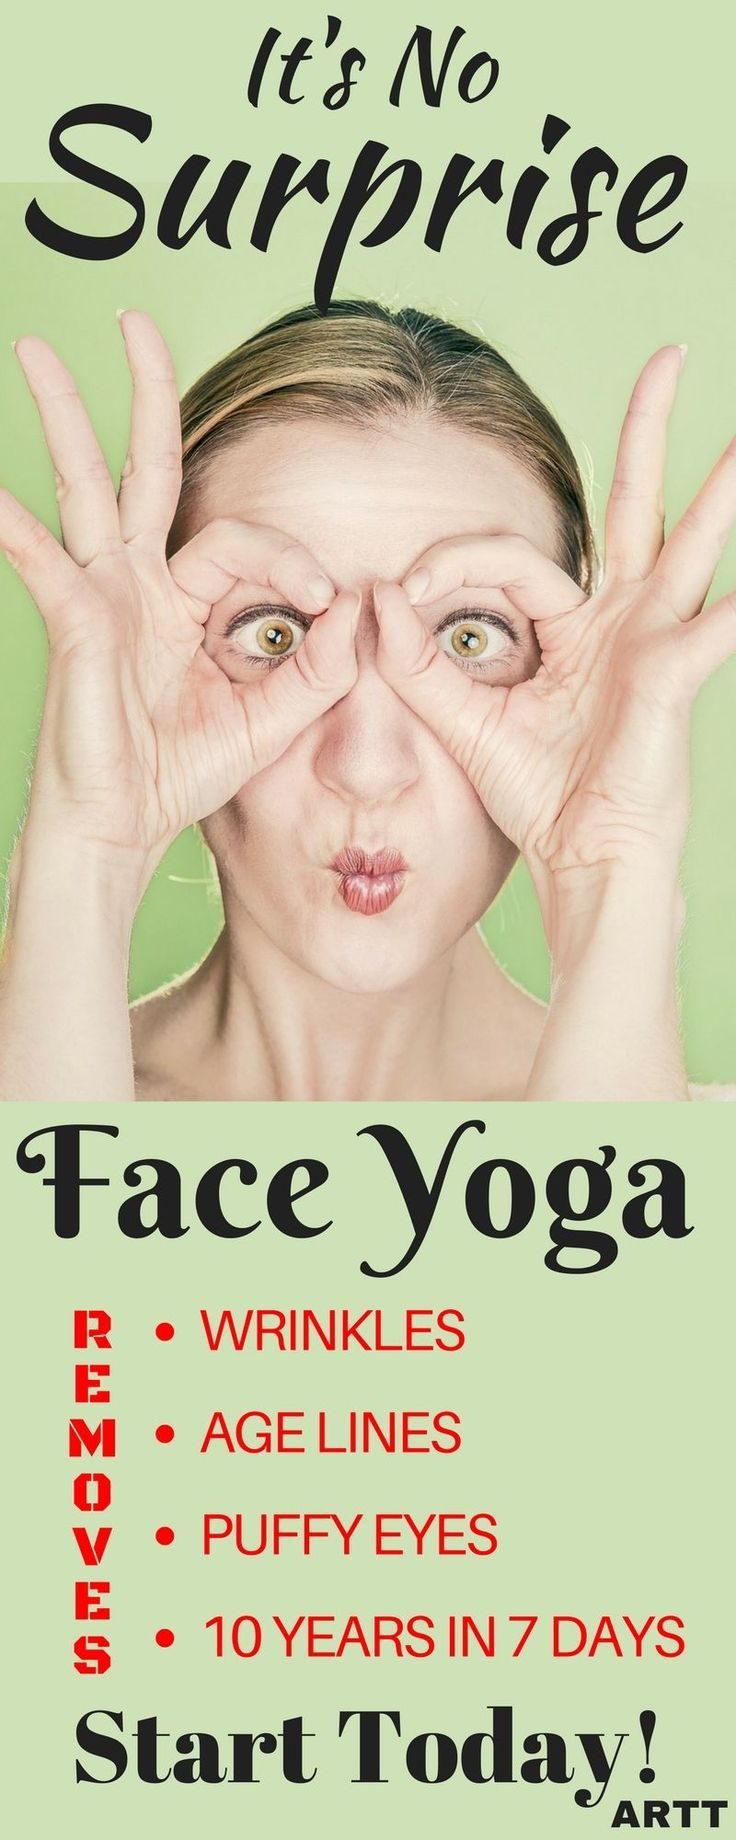 Face Yoga makes you look younger by toning the face.  Try the pefect face yoga program to make you look and feel younger. Lose face fat and feel young again.   yogameditation   yoga #yogaposes   yogabenefits   yogapositions   yogaforweightloss    yogaforb